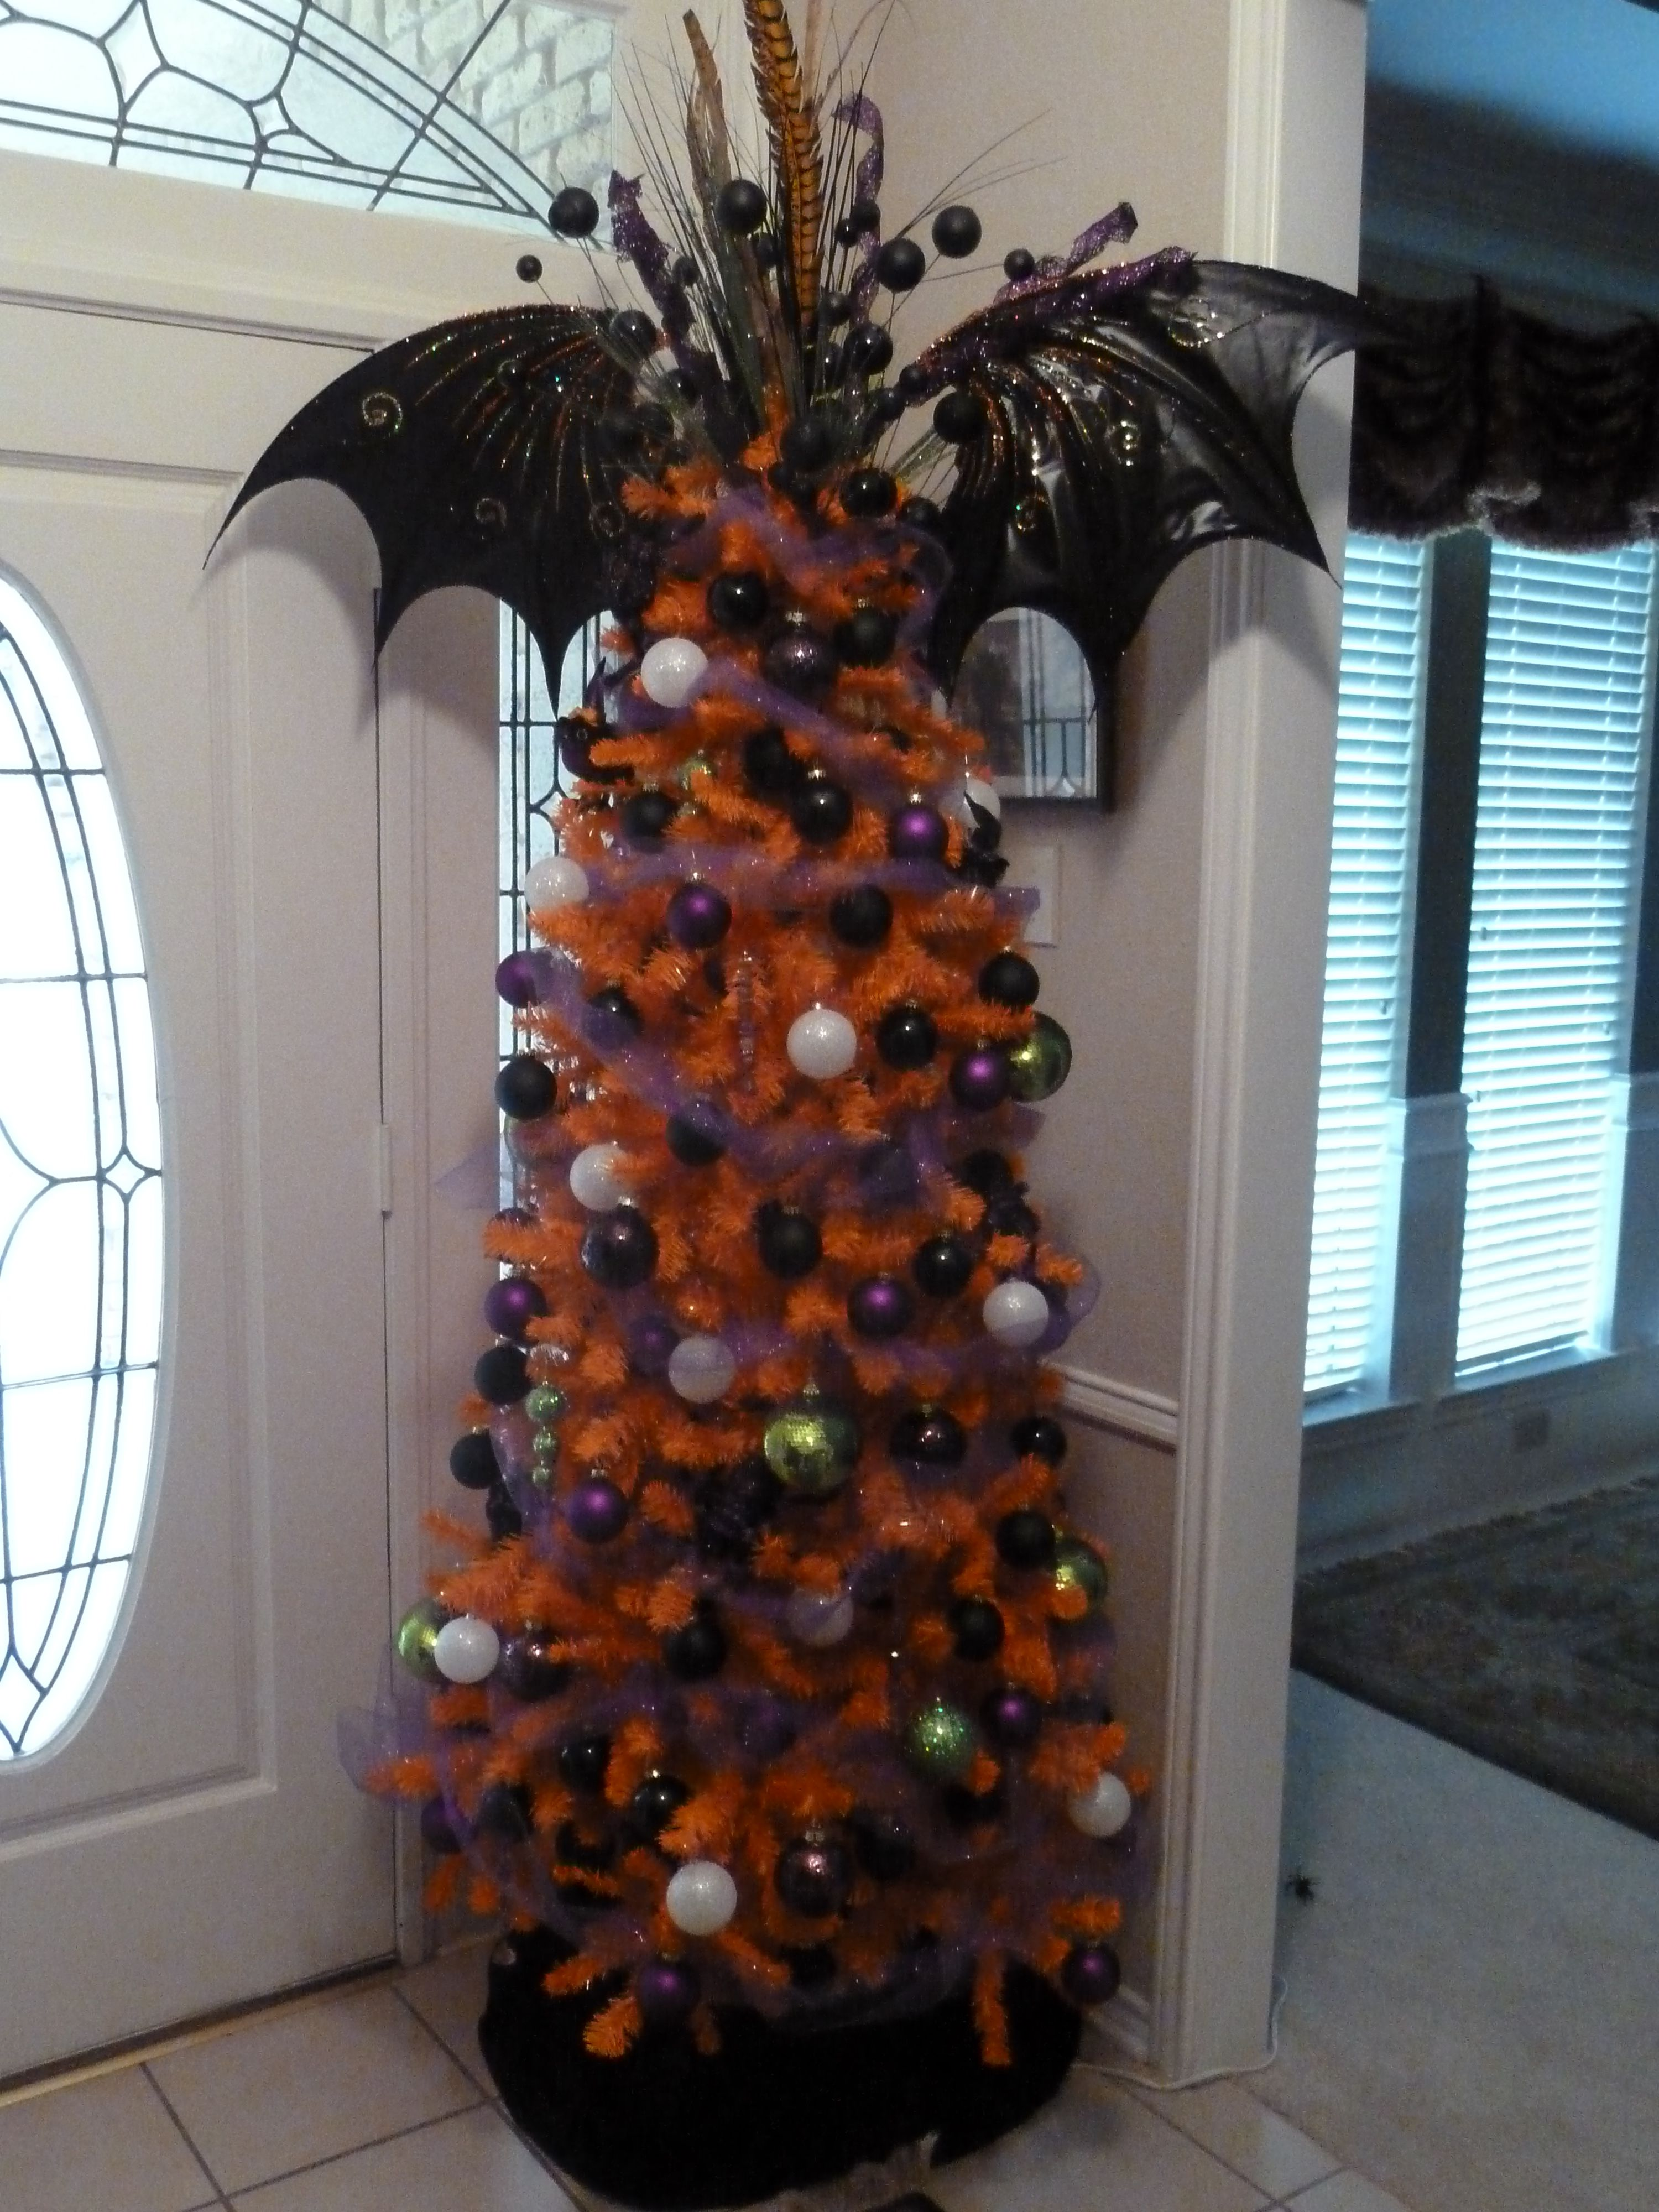 halloween tree i need to buy cheap ornaments from the dollar store and spray paint them black - Where To Buy Cheap Christmas Tree